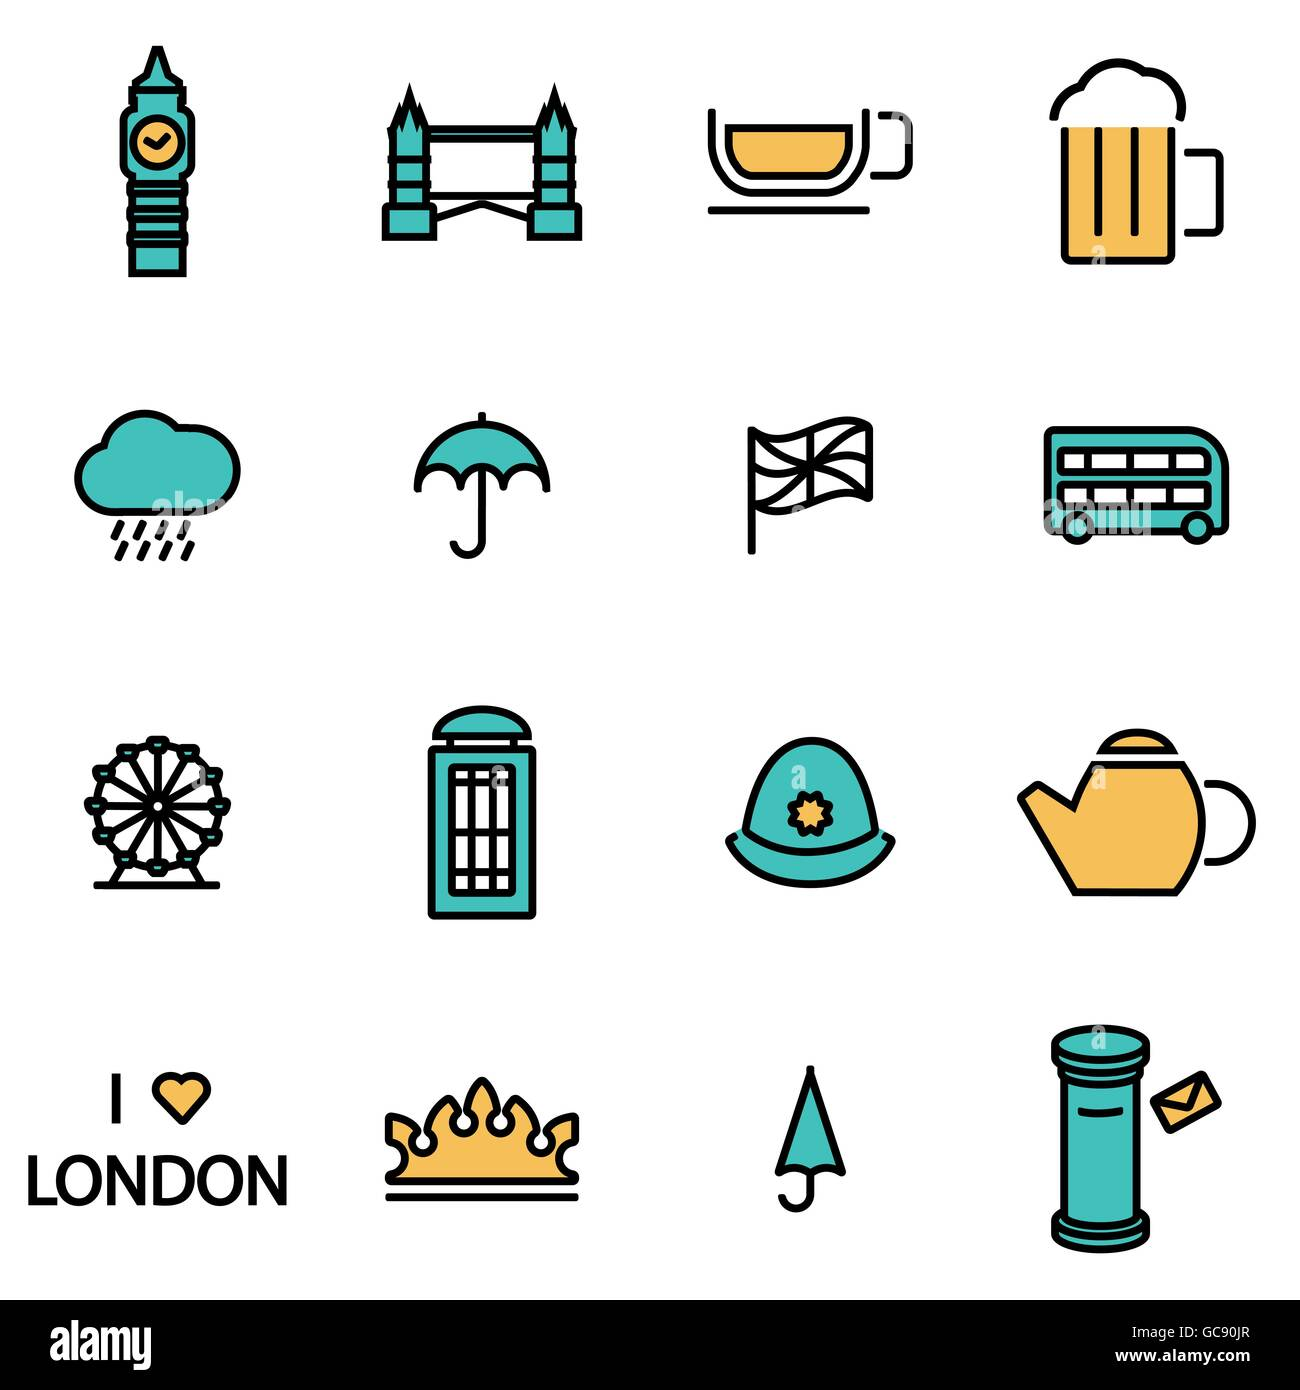 Trendy flat line icon pack for designers and developers. Vector line london icon set - Stock Image